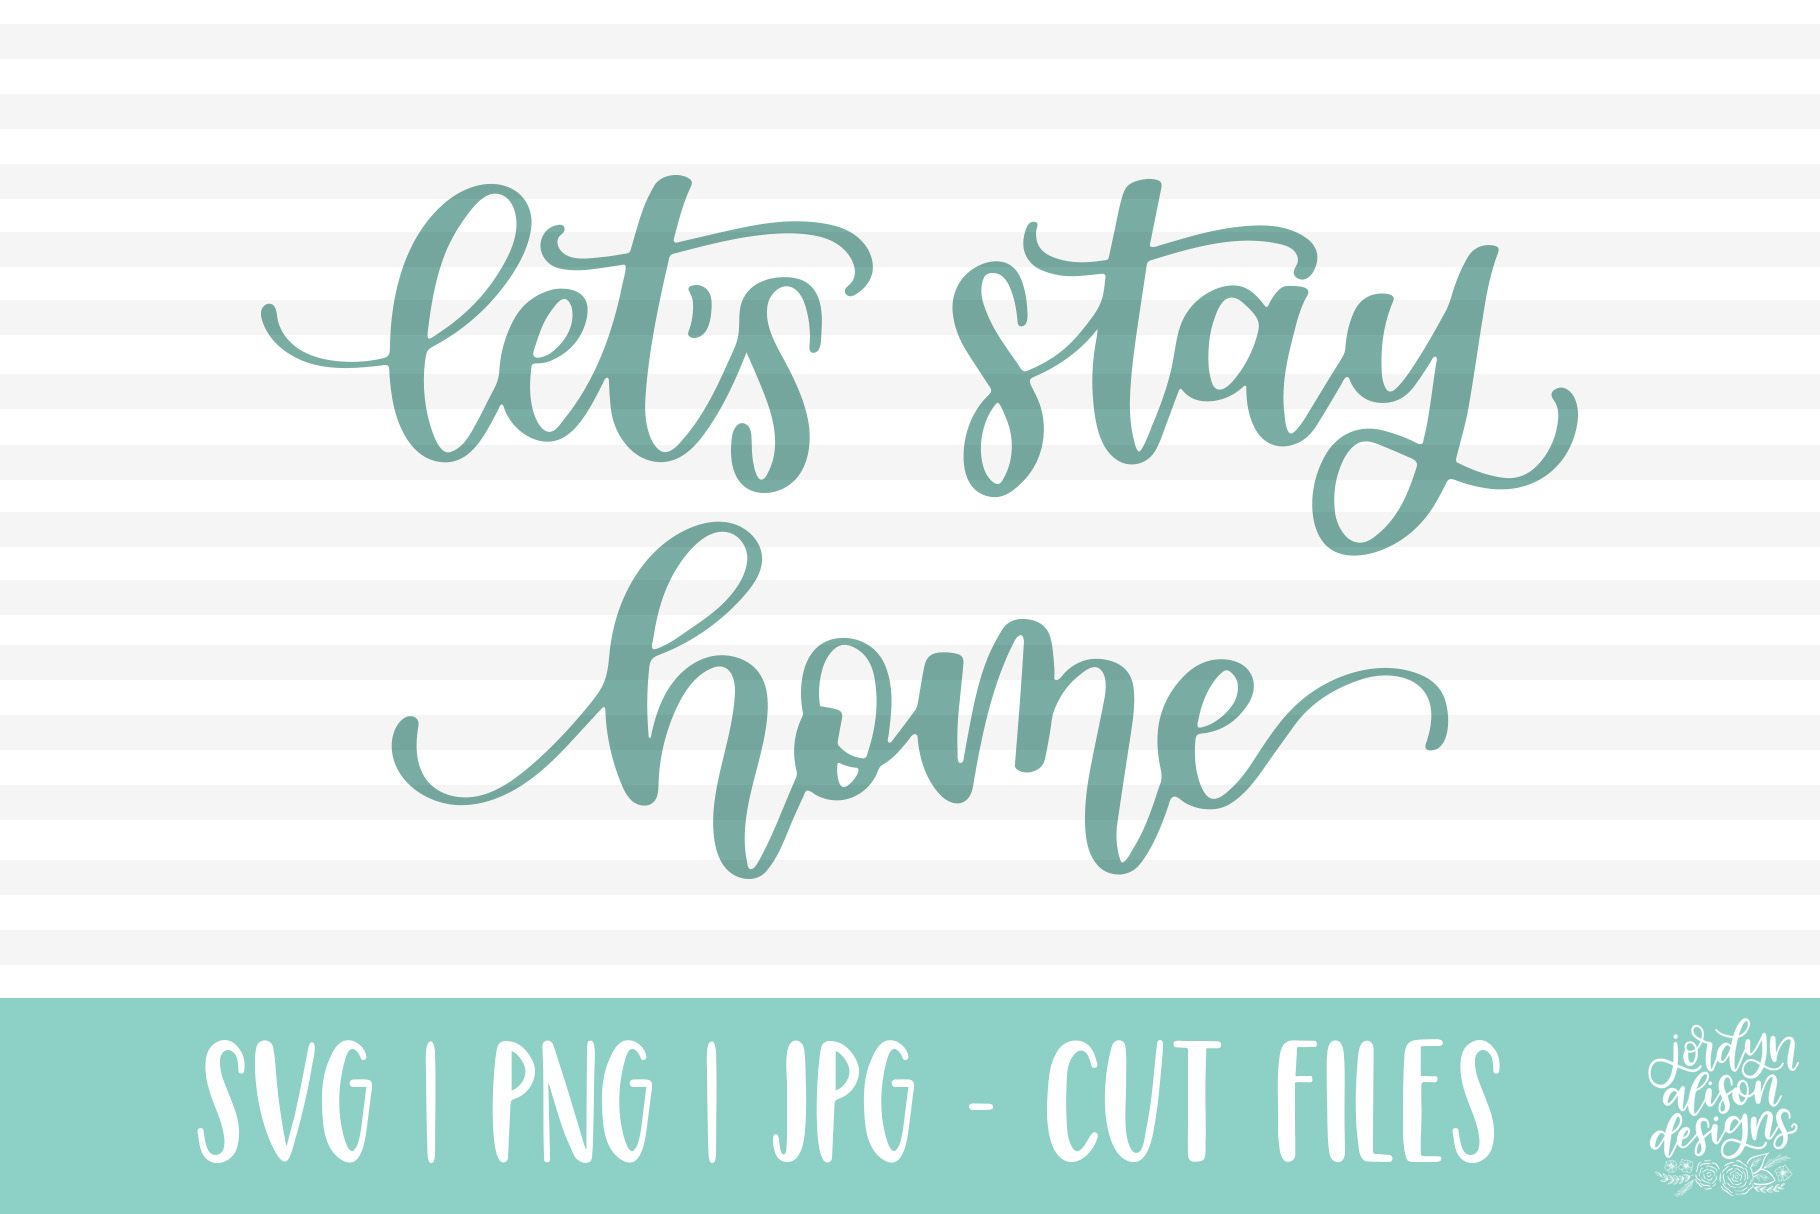 Lets Stay Home, Hand Lettered SVG Cut File example image 4